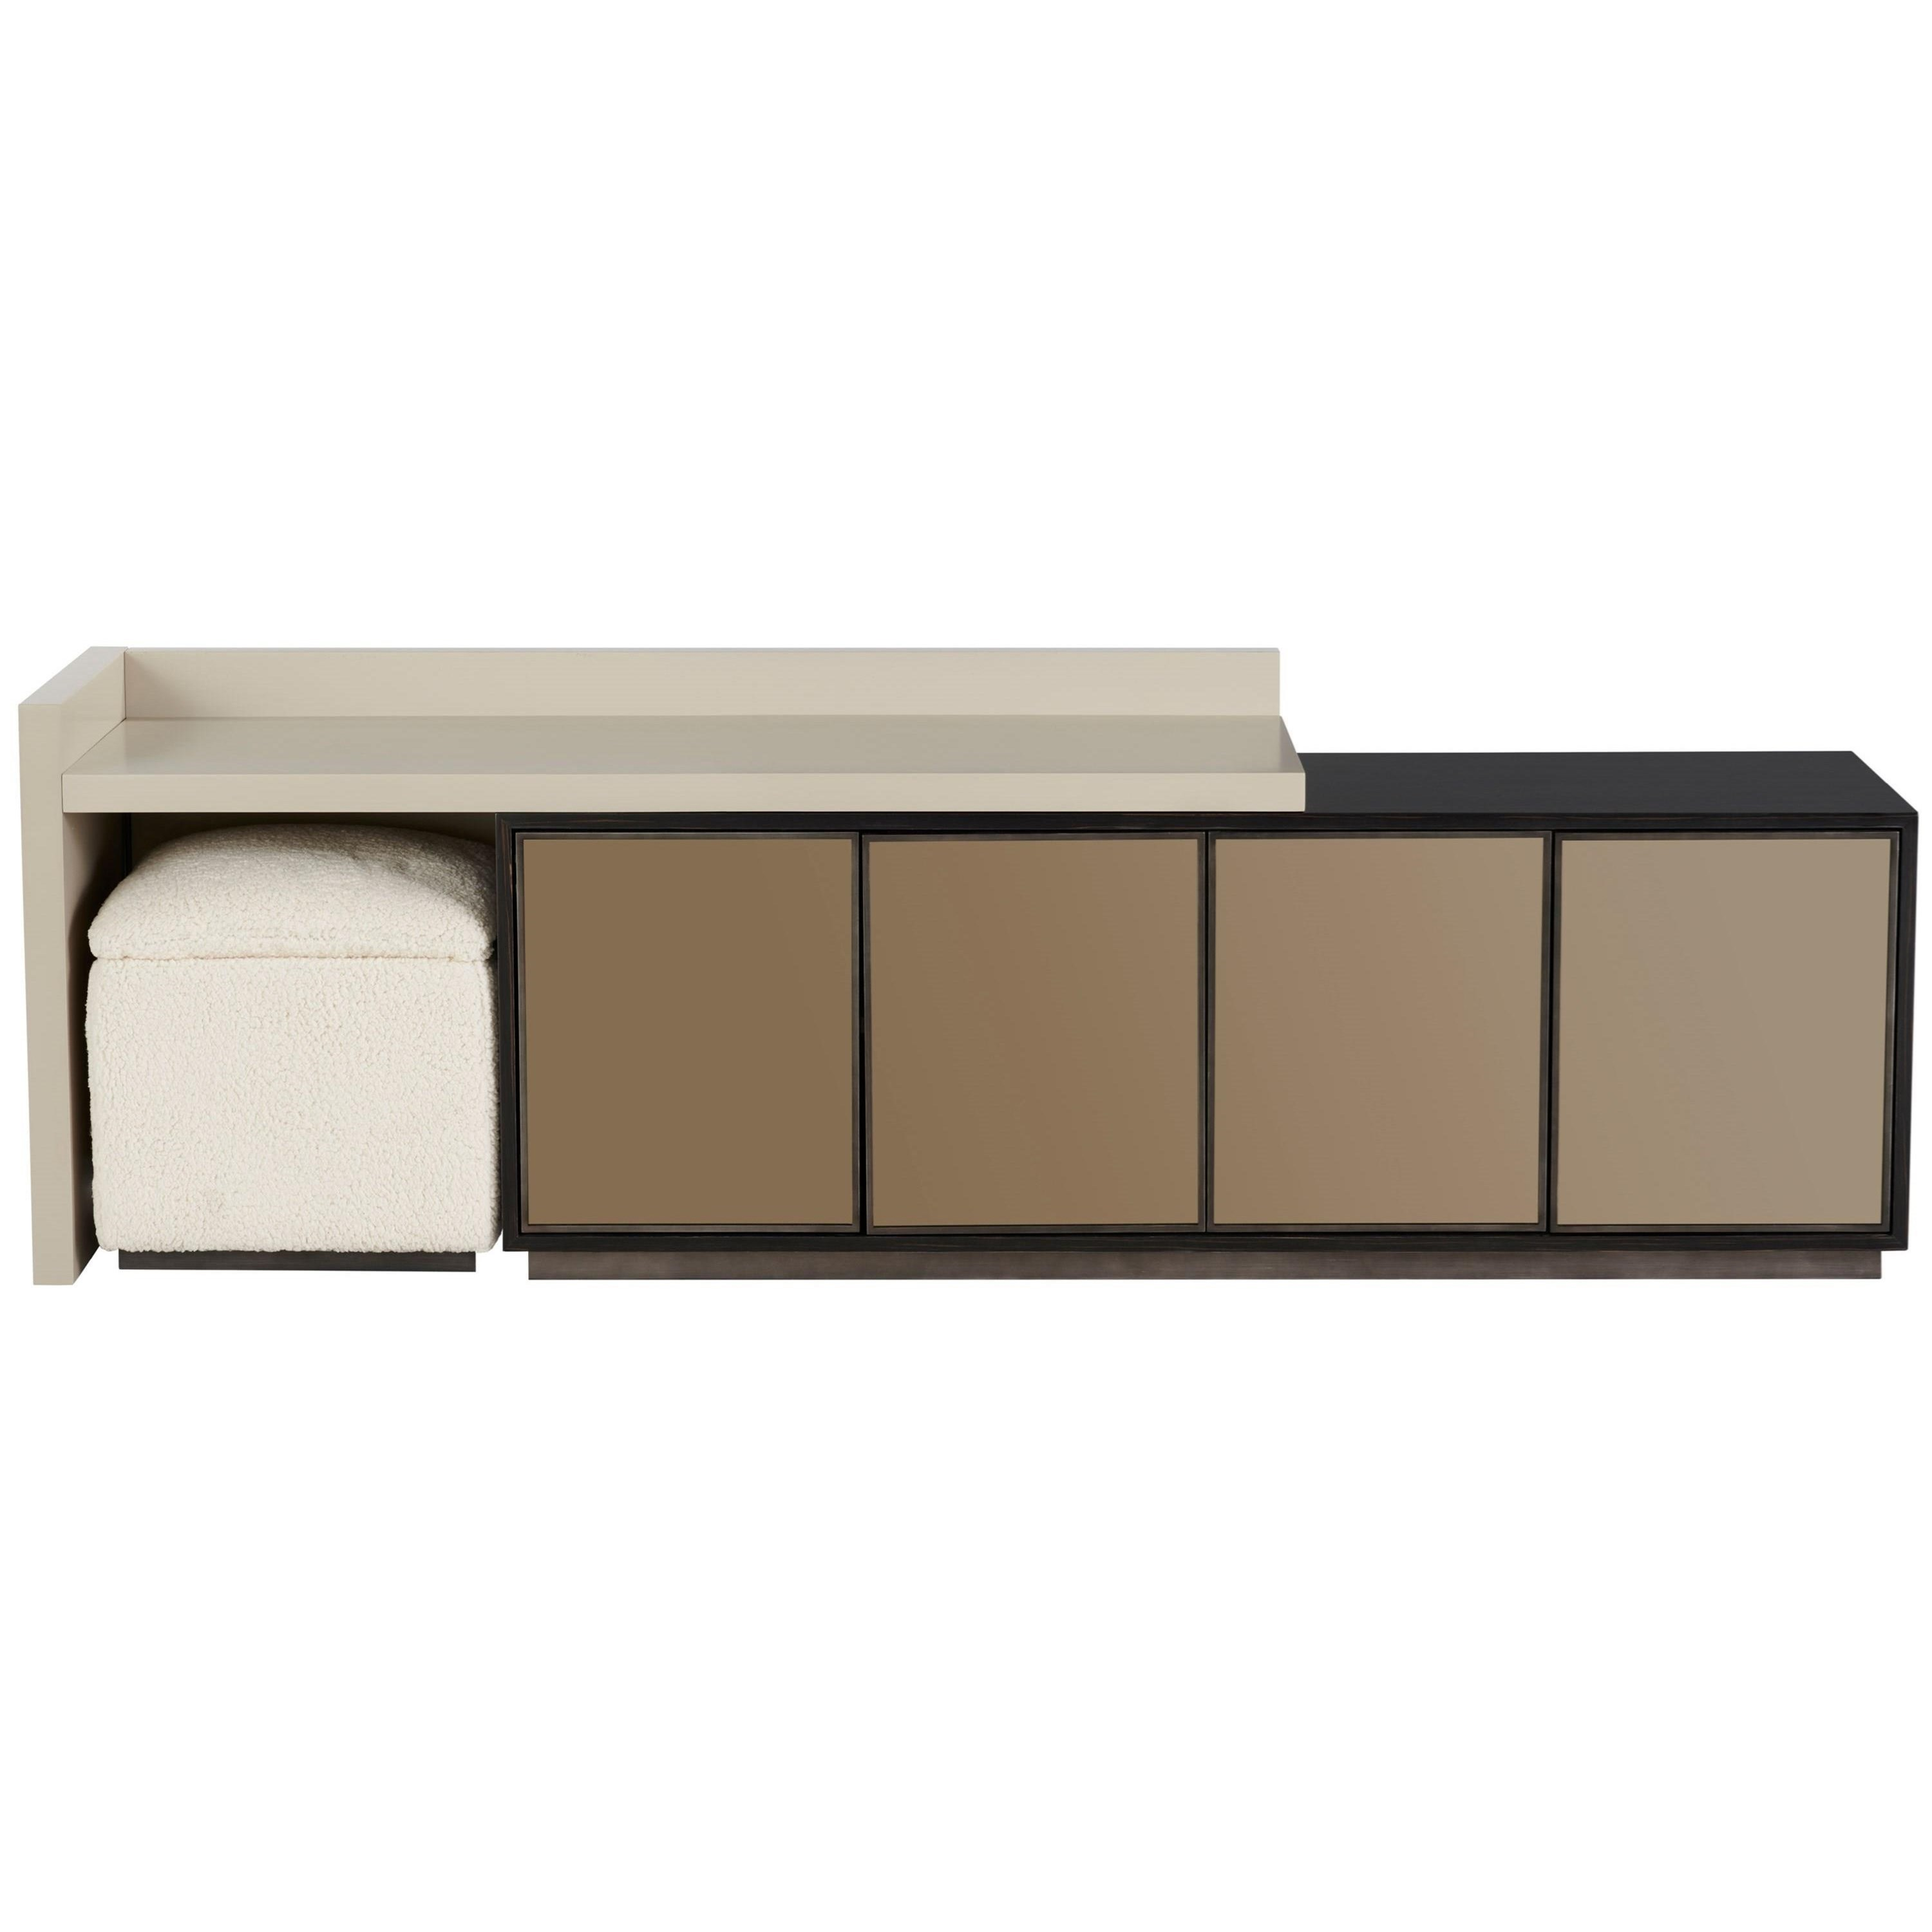 Nina Magon 941 Heath Entertainment Console by Universal at Baer's Furniture